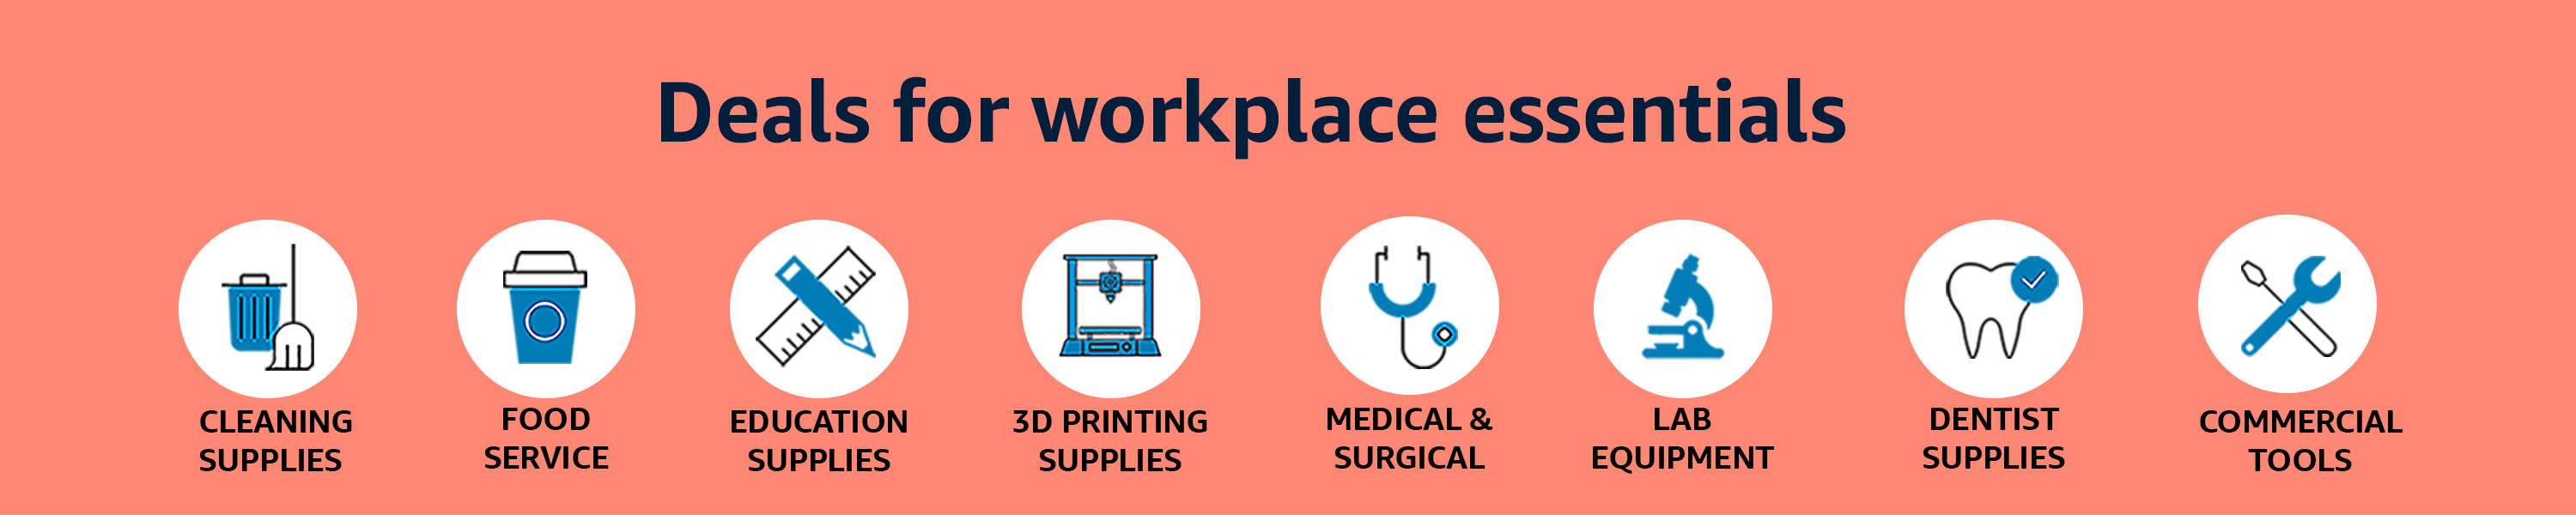 Deals on workplace essentials. Cleaning supplies, food service, education supplies, and more